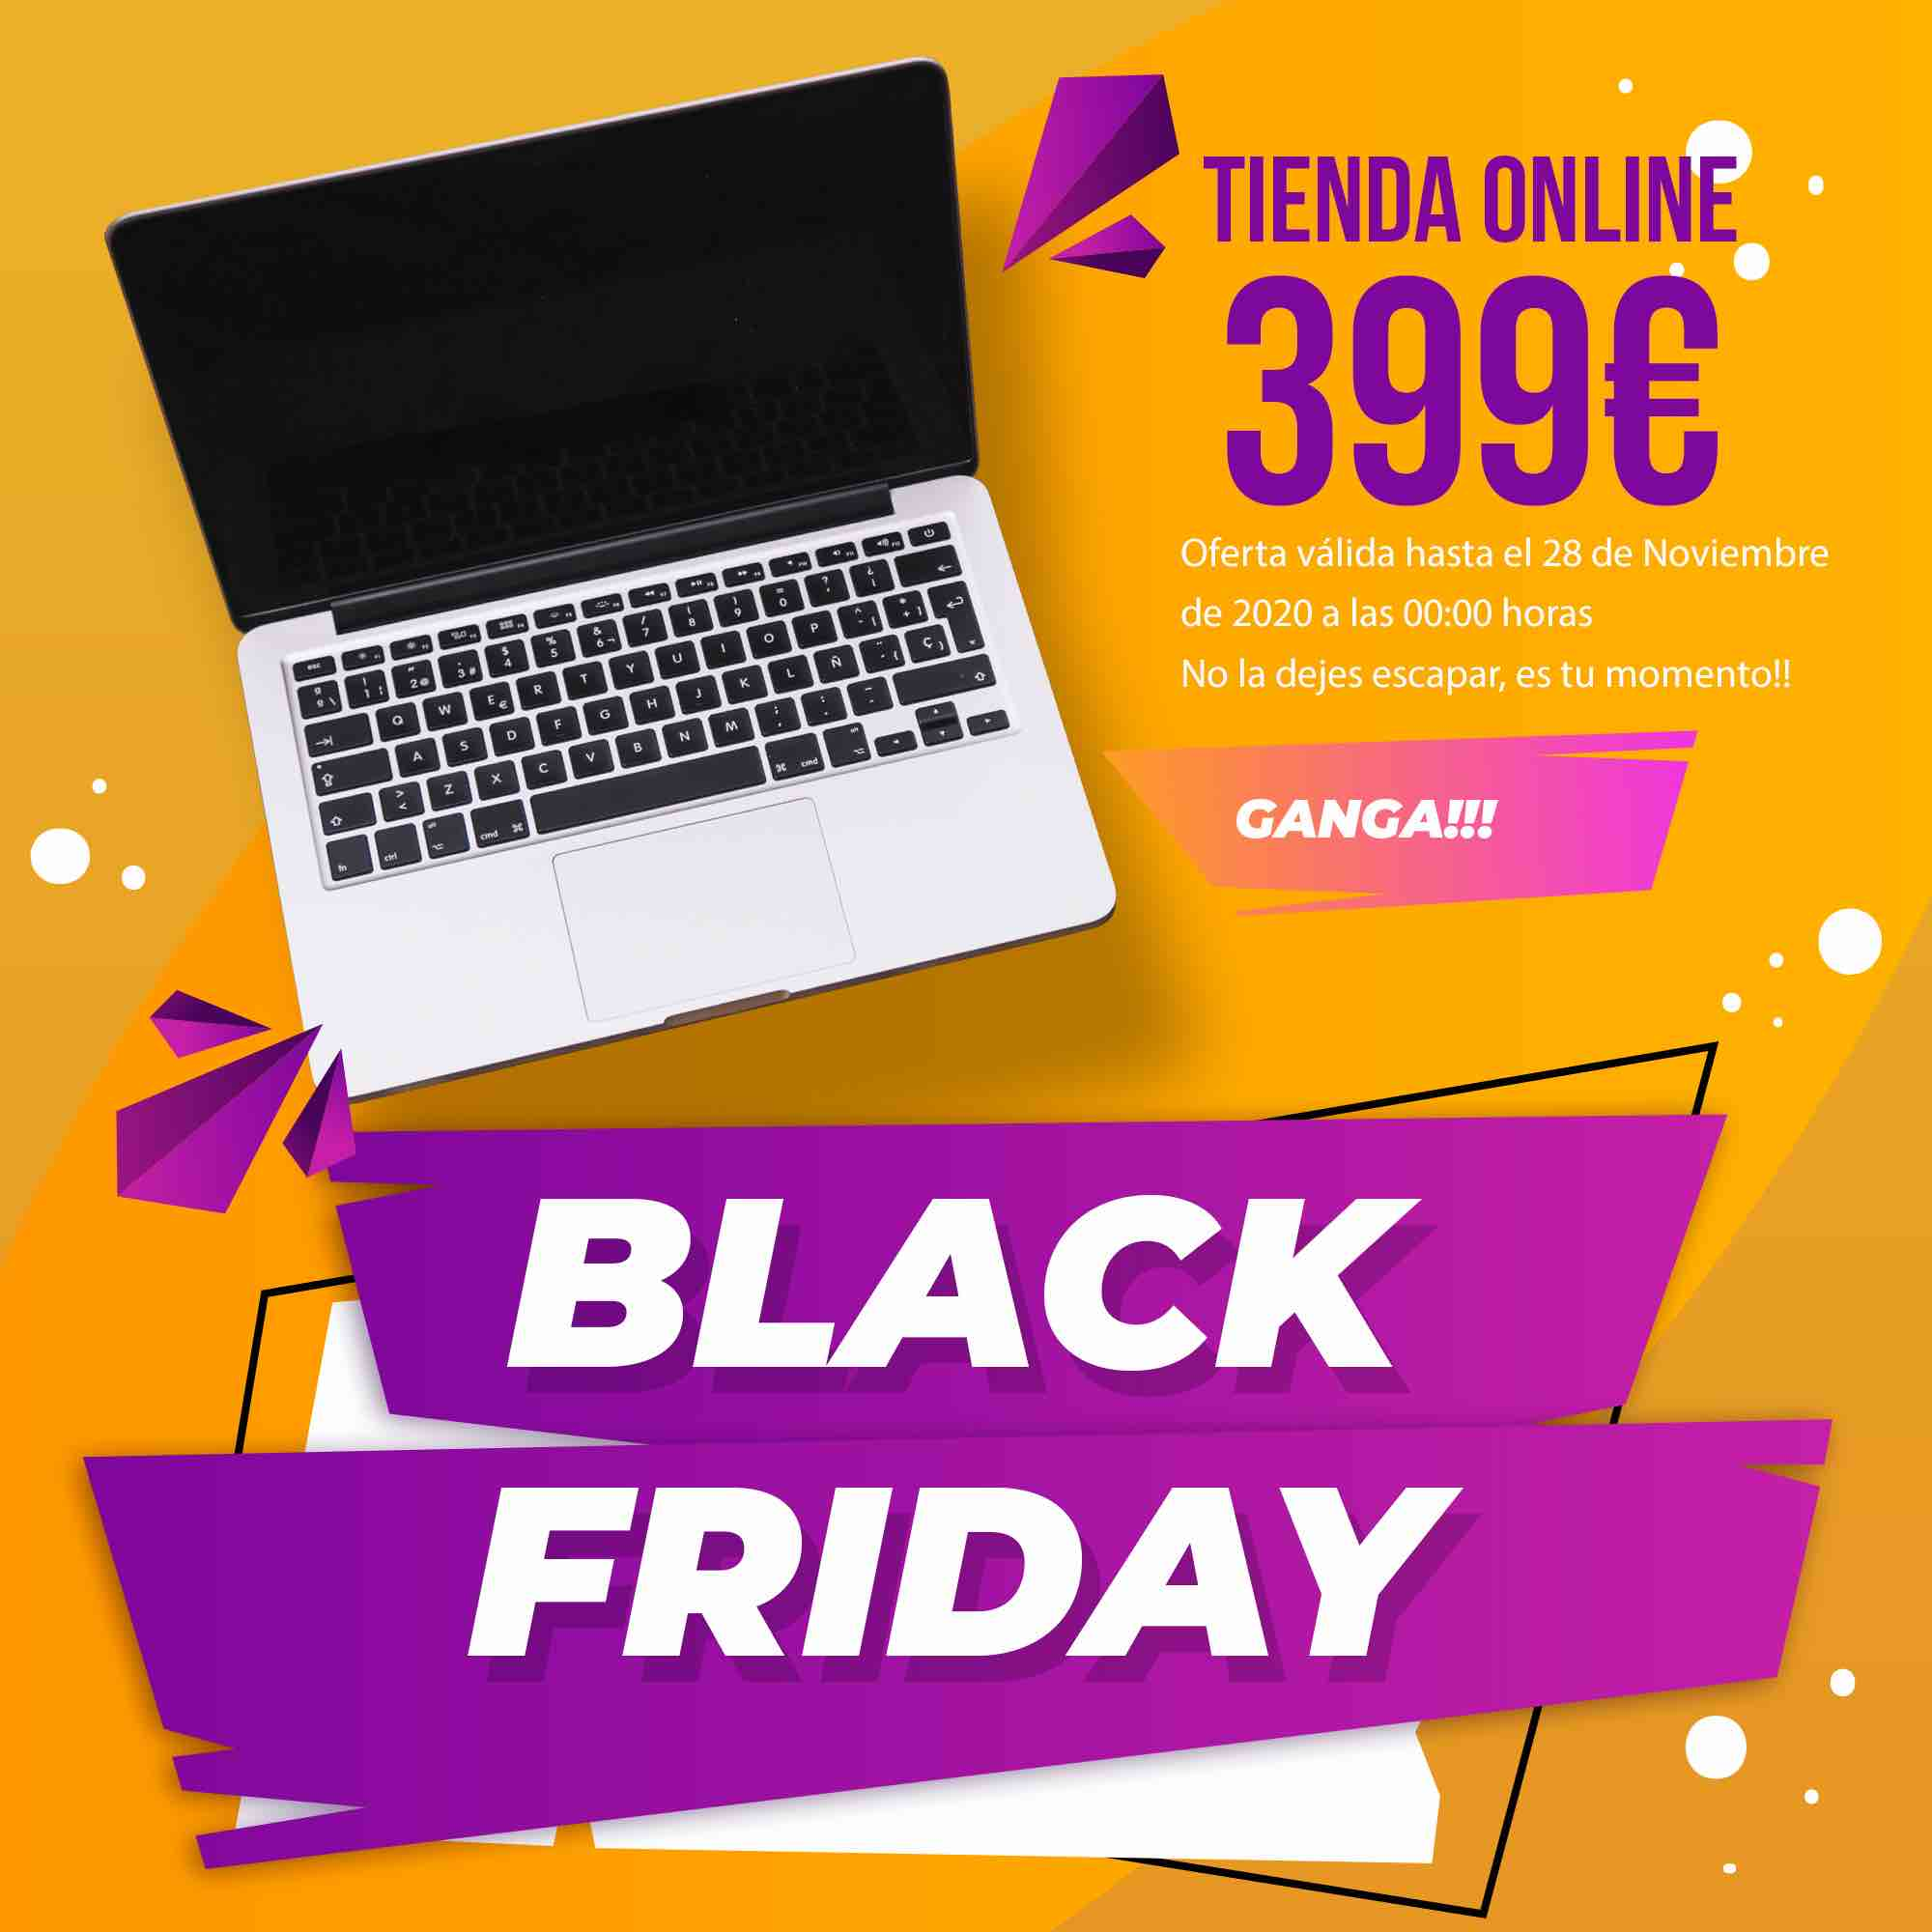 Black Friday marketing tienda online Cartagena